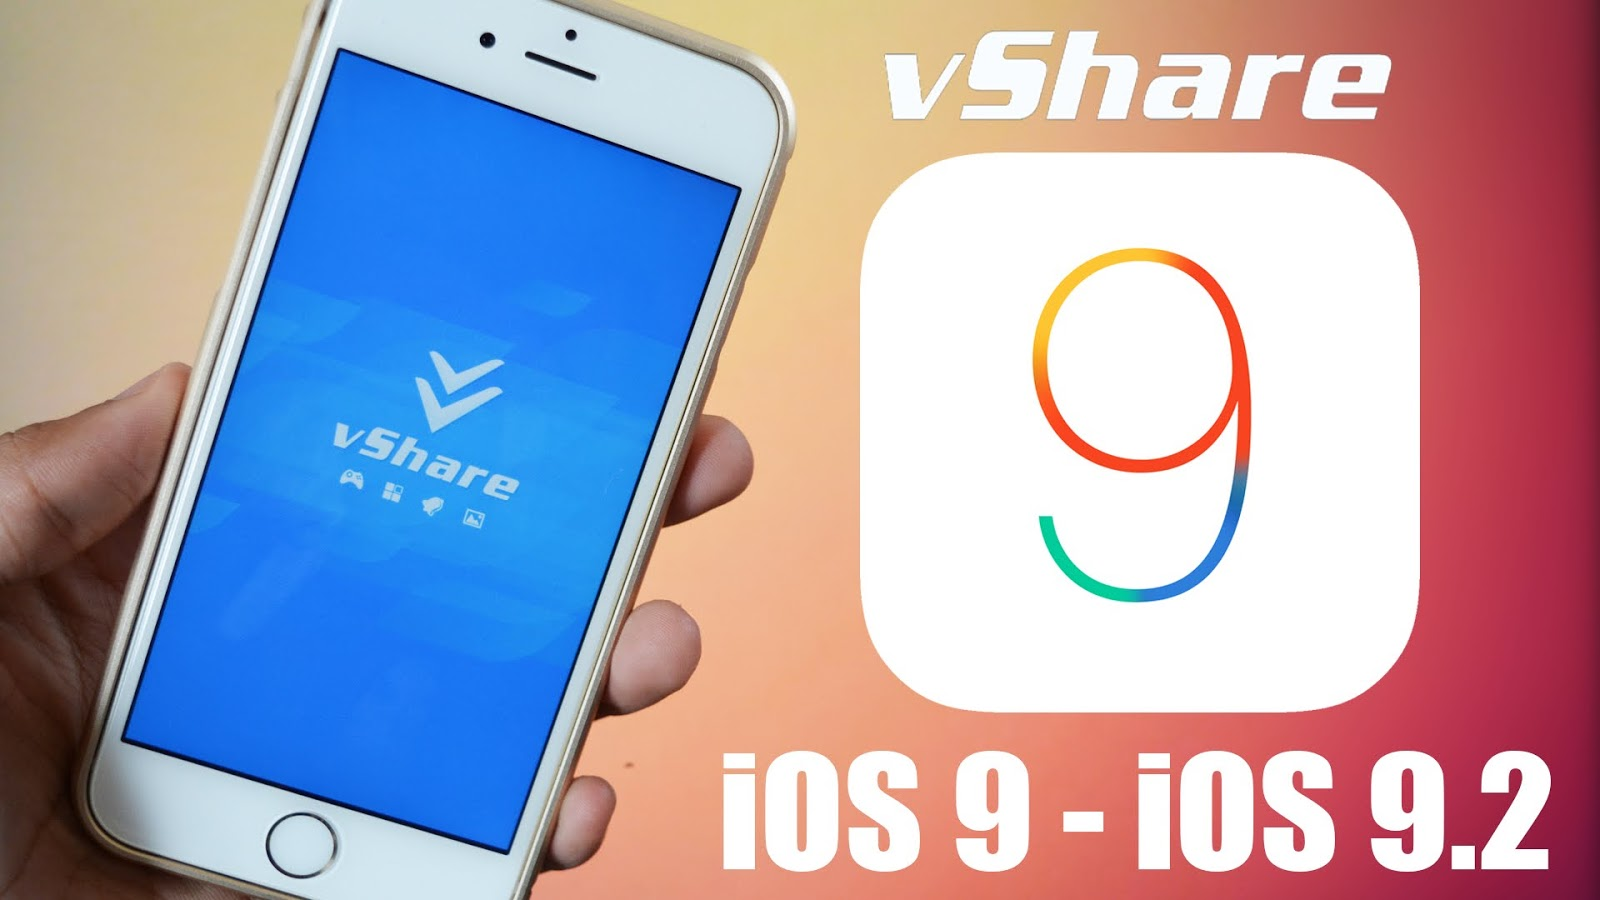 How To Install vShare On On iPhone Or iPad Without Jailbreak